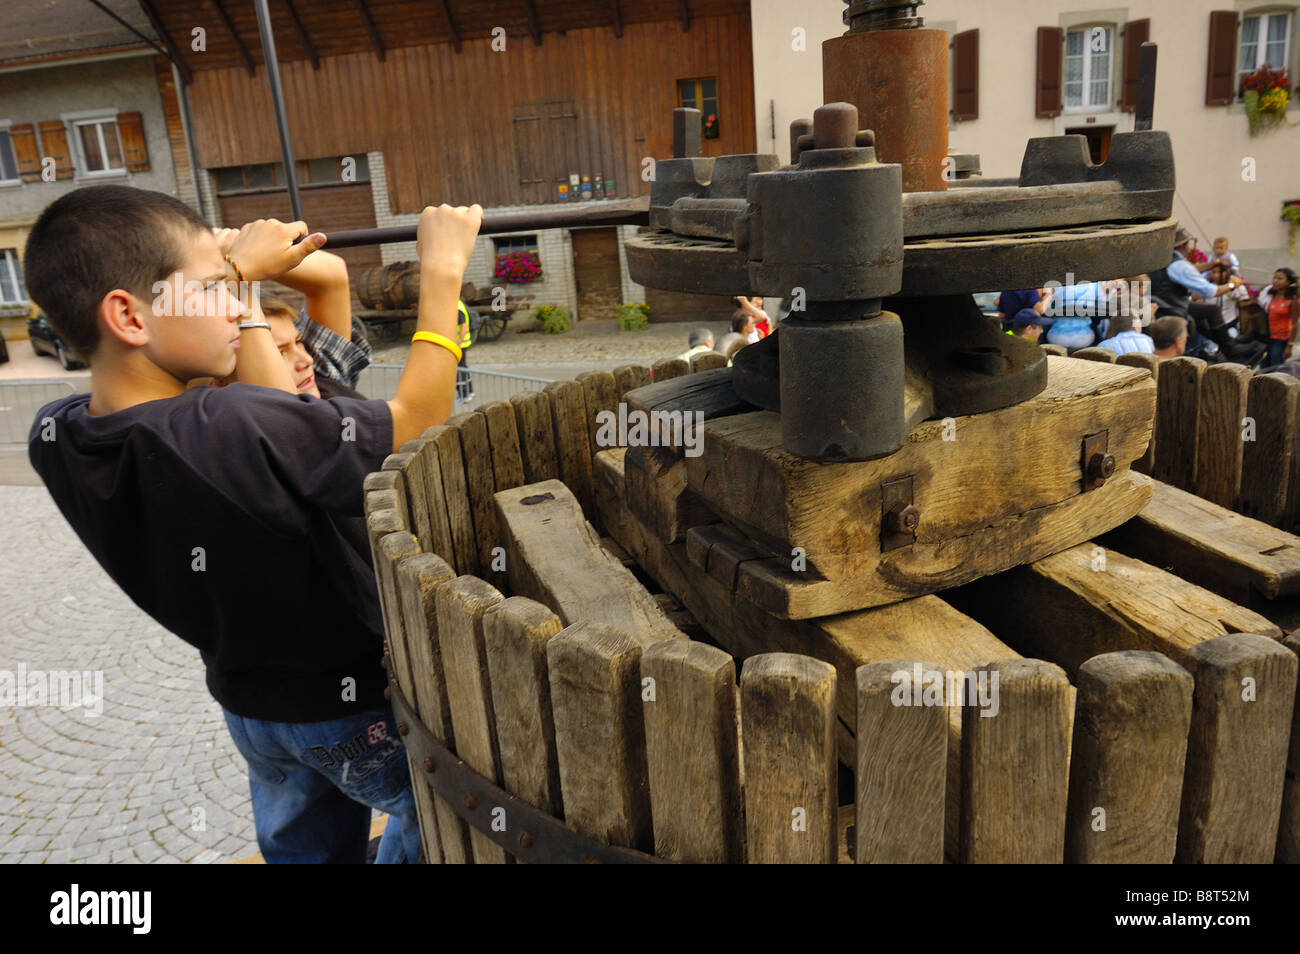 Two Swiss boys operate an old wine press at a wine festival - Stock Image